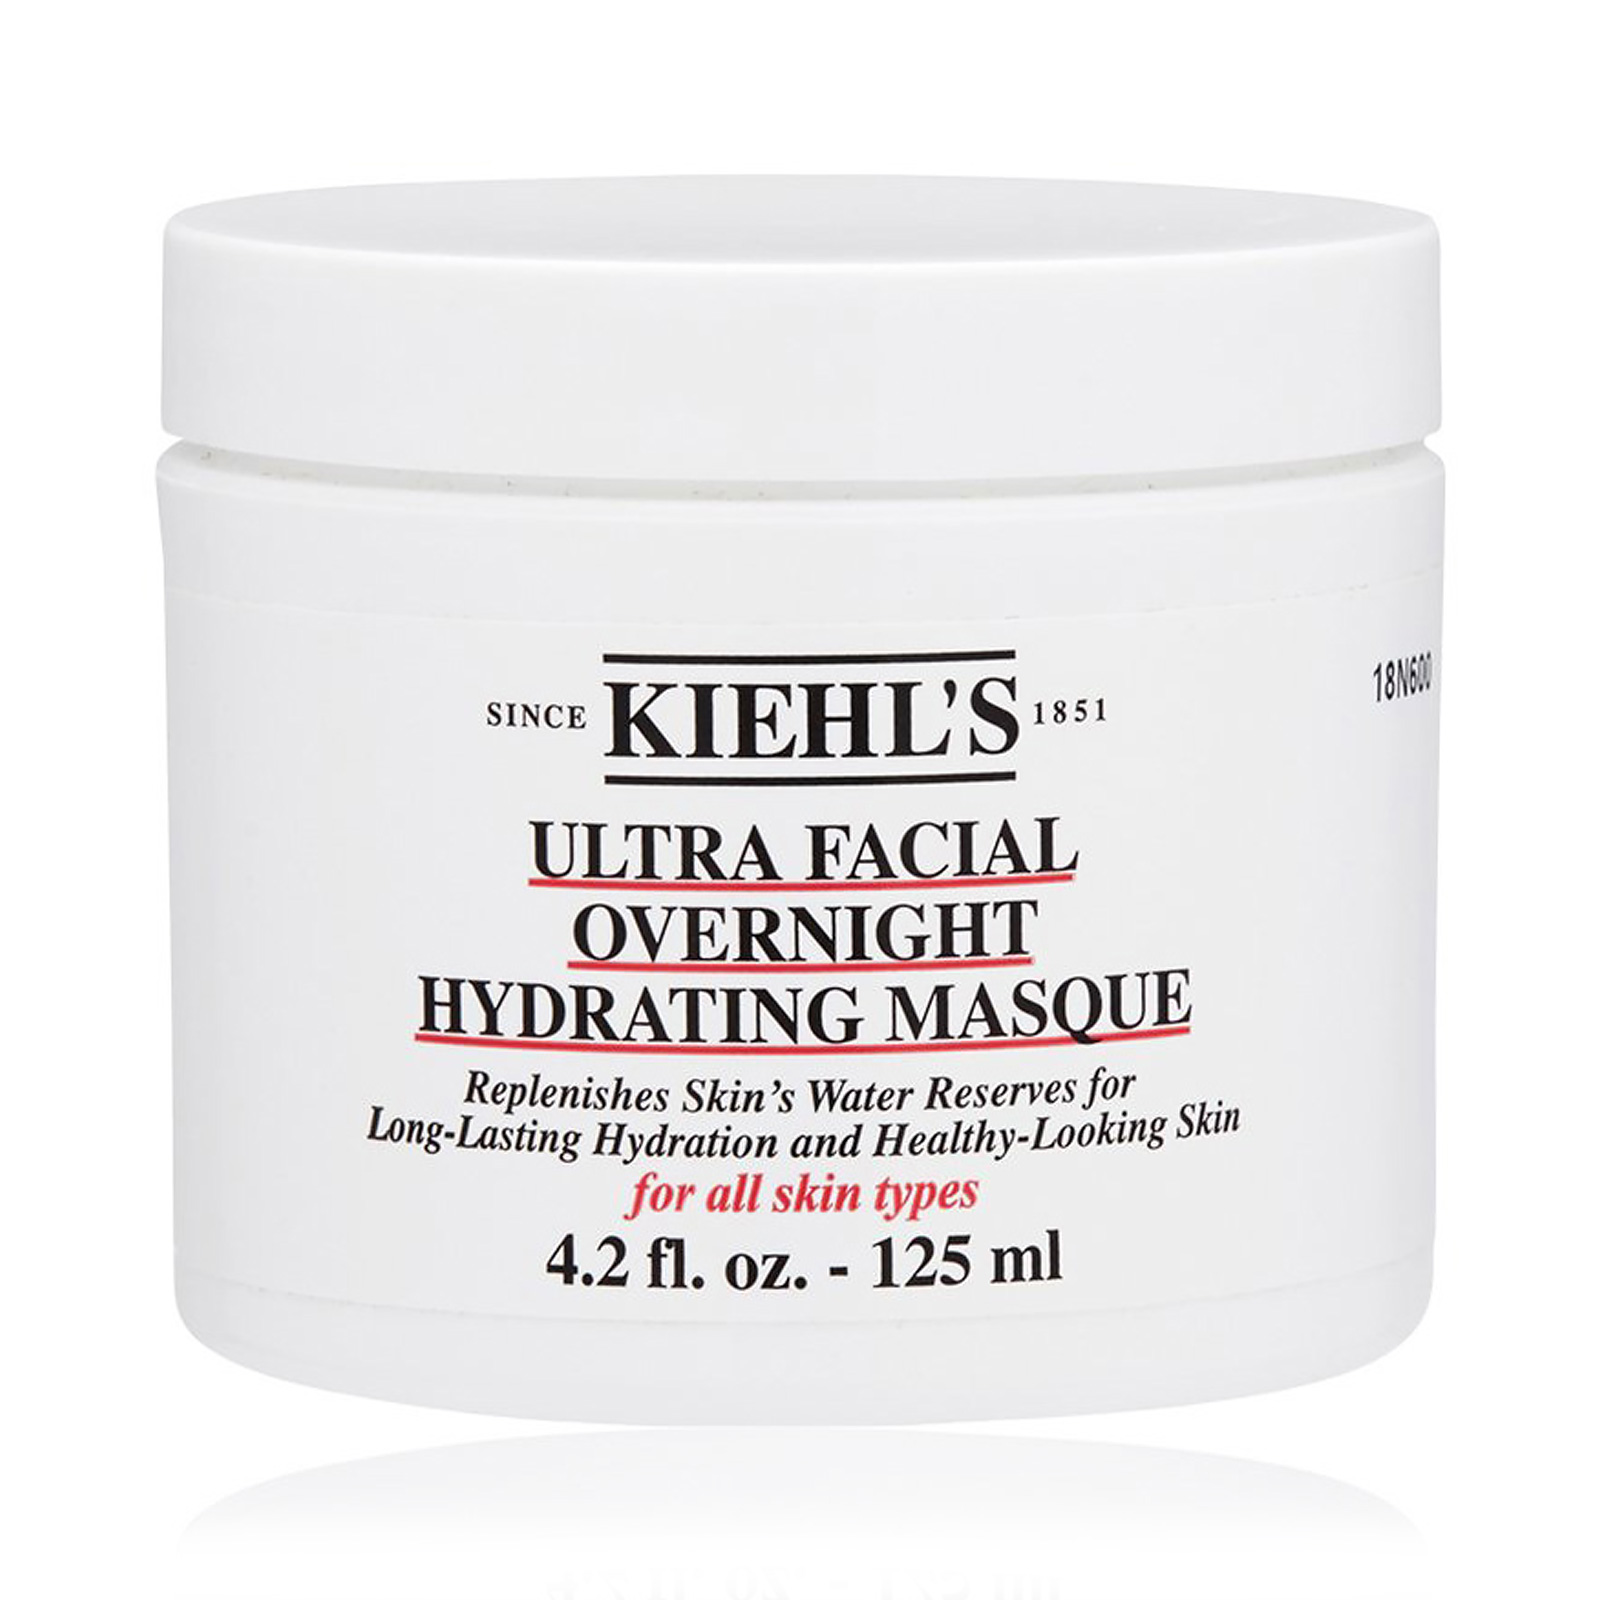 Ultra Facial Overnight Hydrating Masque (For All Skin Types)